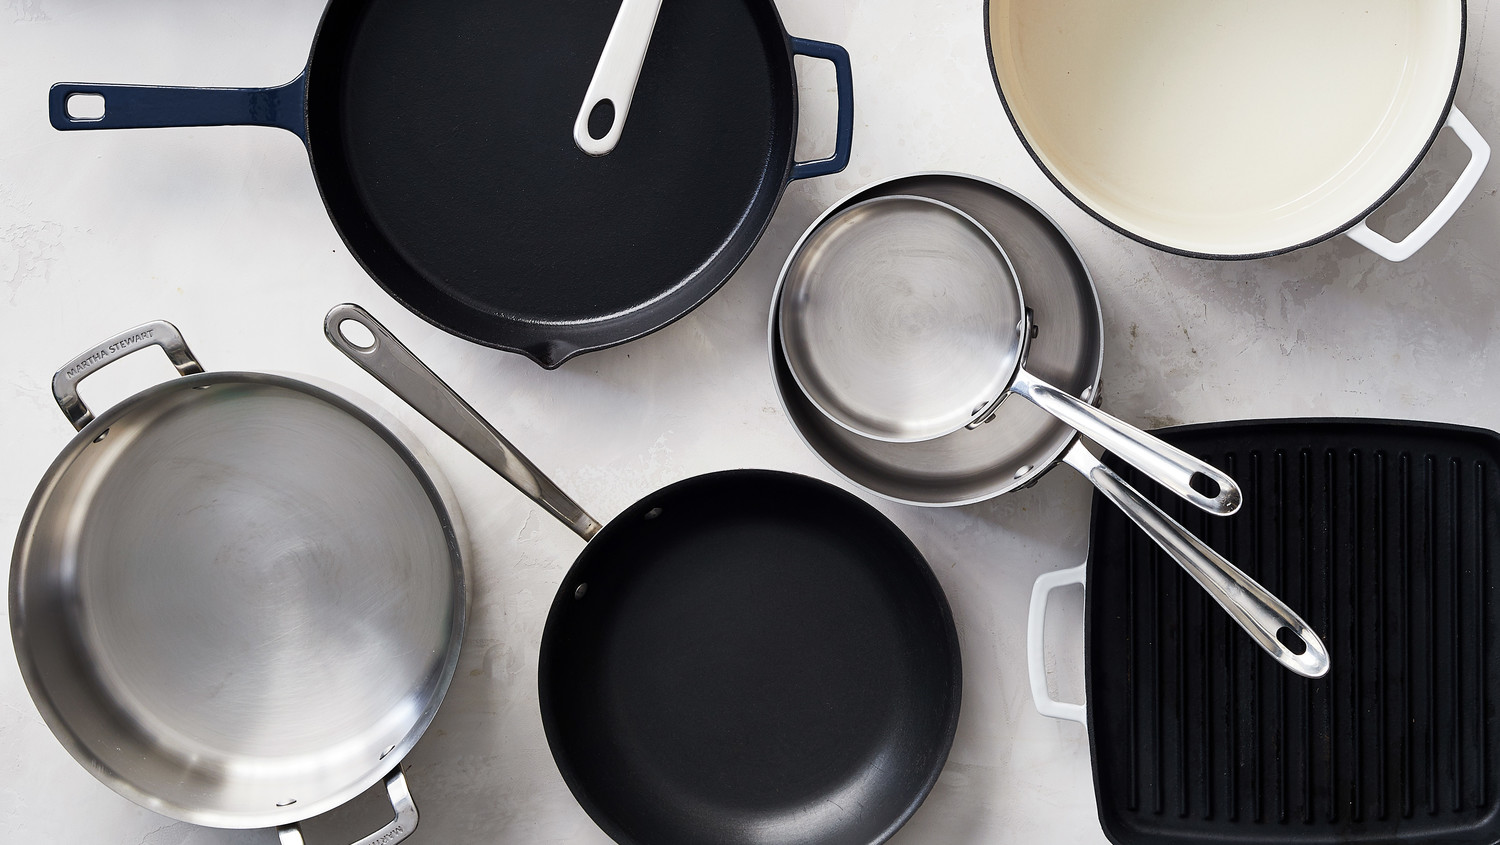 How to Take Care of a Stainless Steel Pan—and Never Scorch It Again